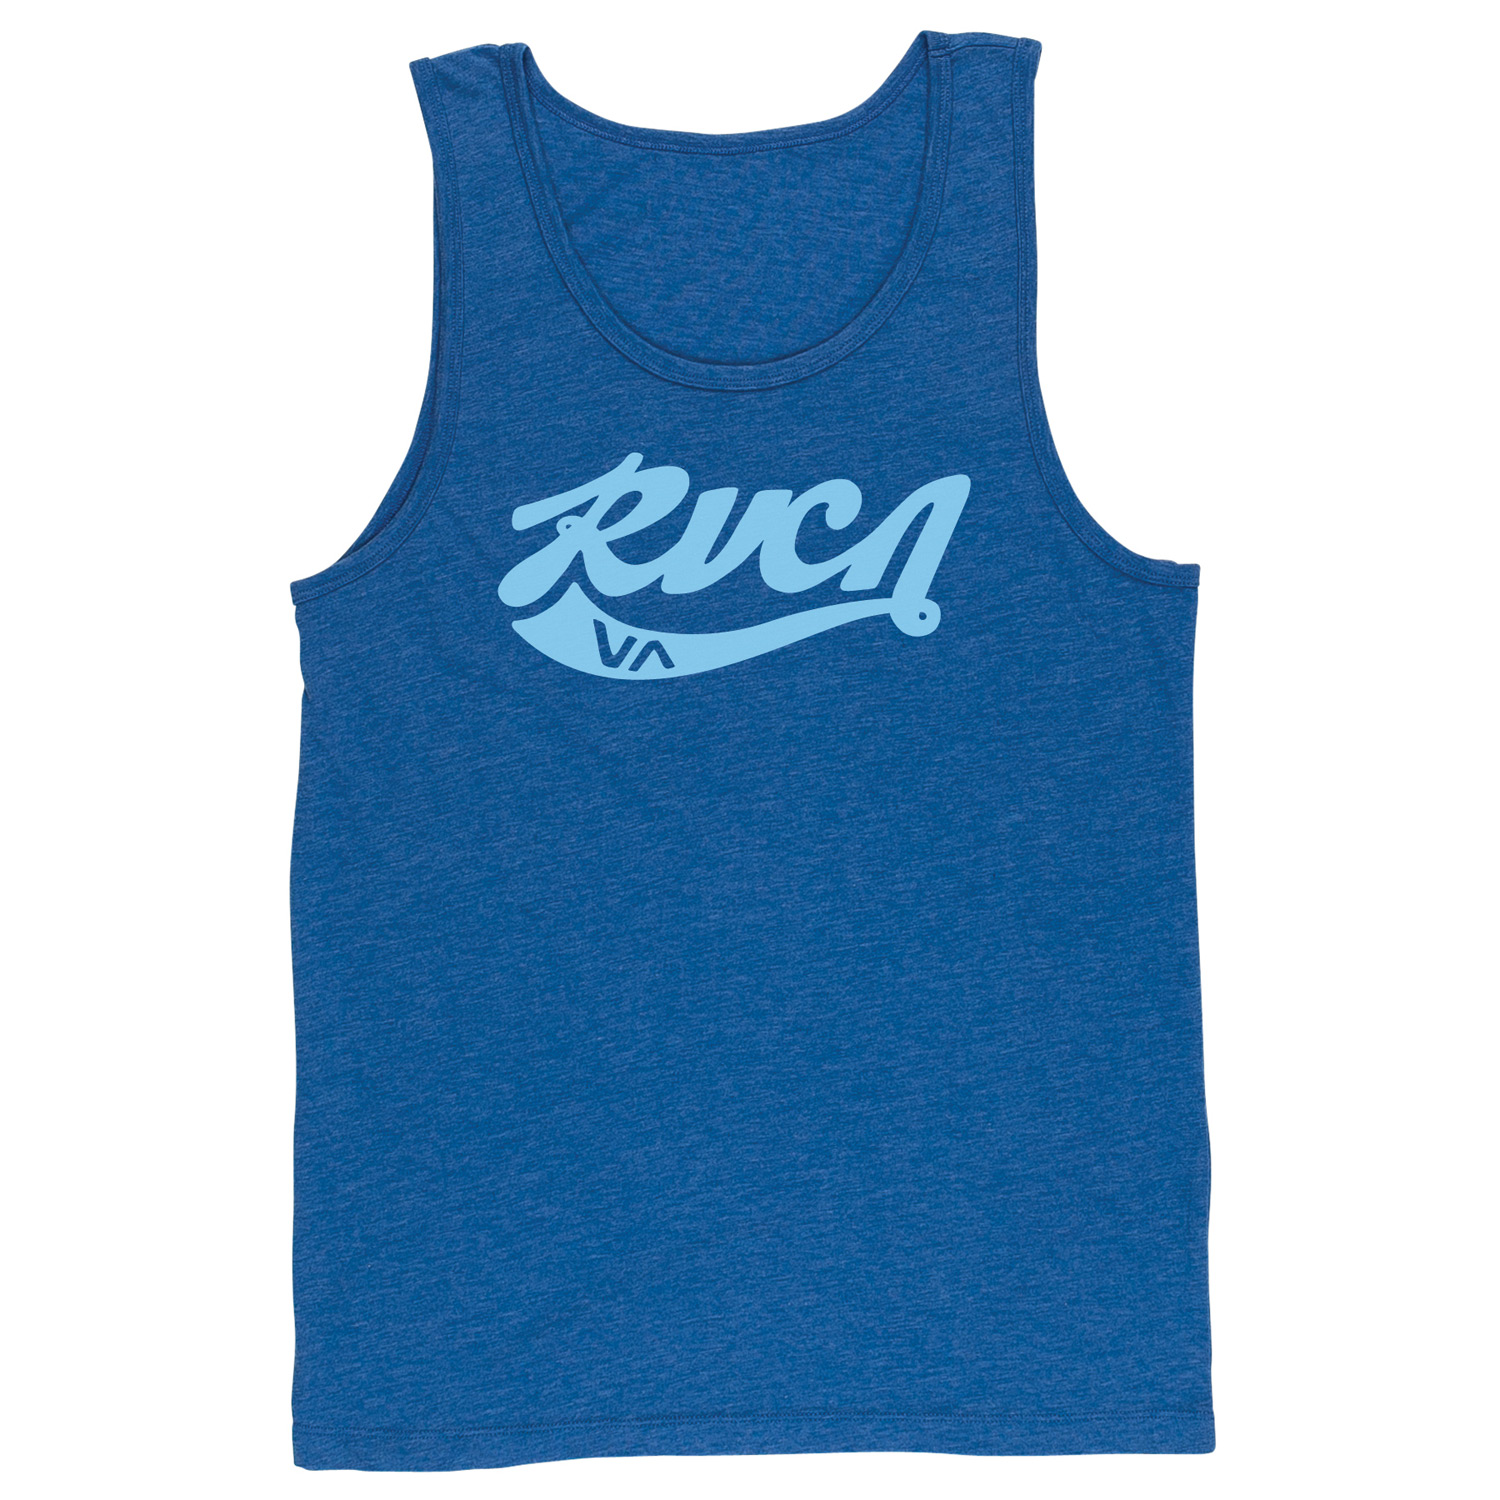 Surf Key Features of the RVCA Crola Tank: 55% Polyester/45% Cotton Vintage Dye Slim Fit tank with front print and screened inside neck - $26.00